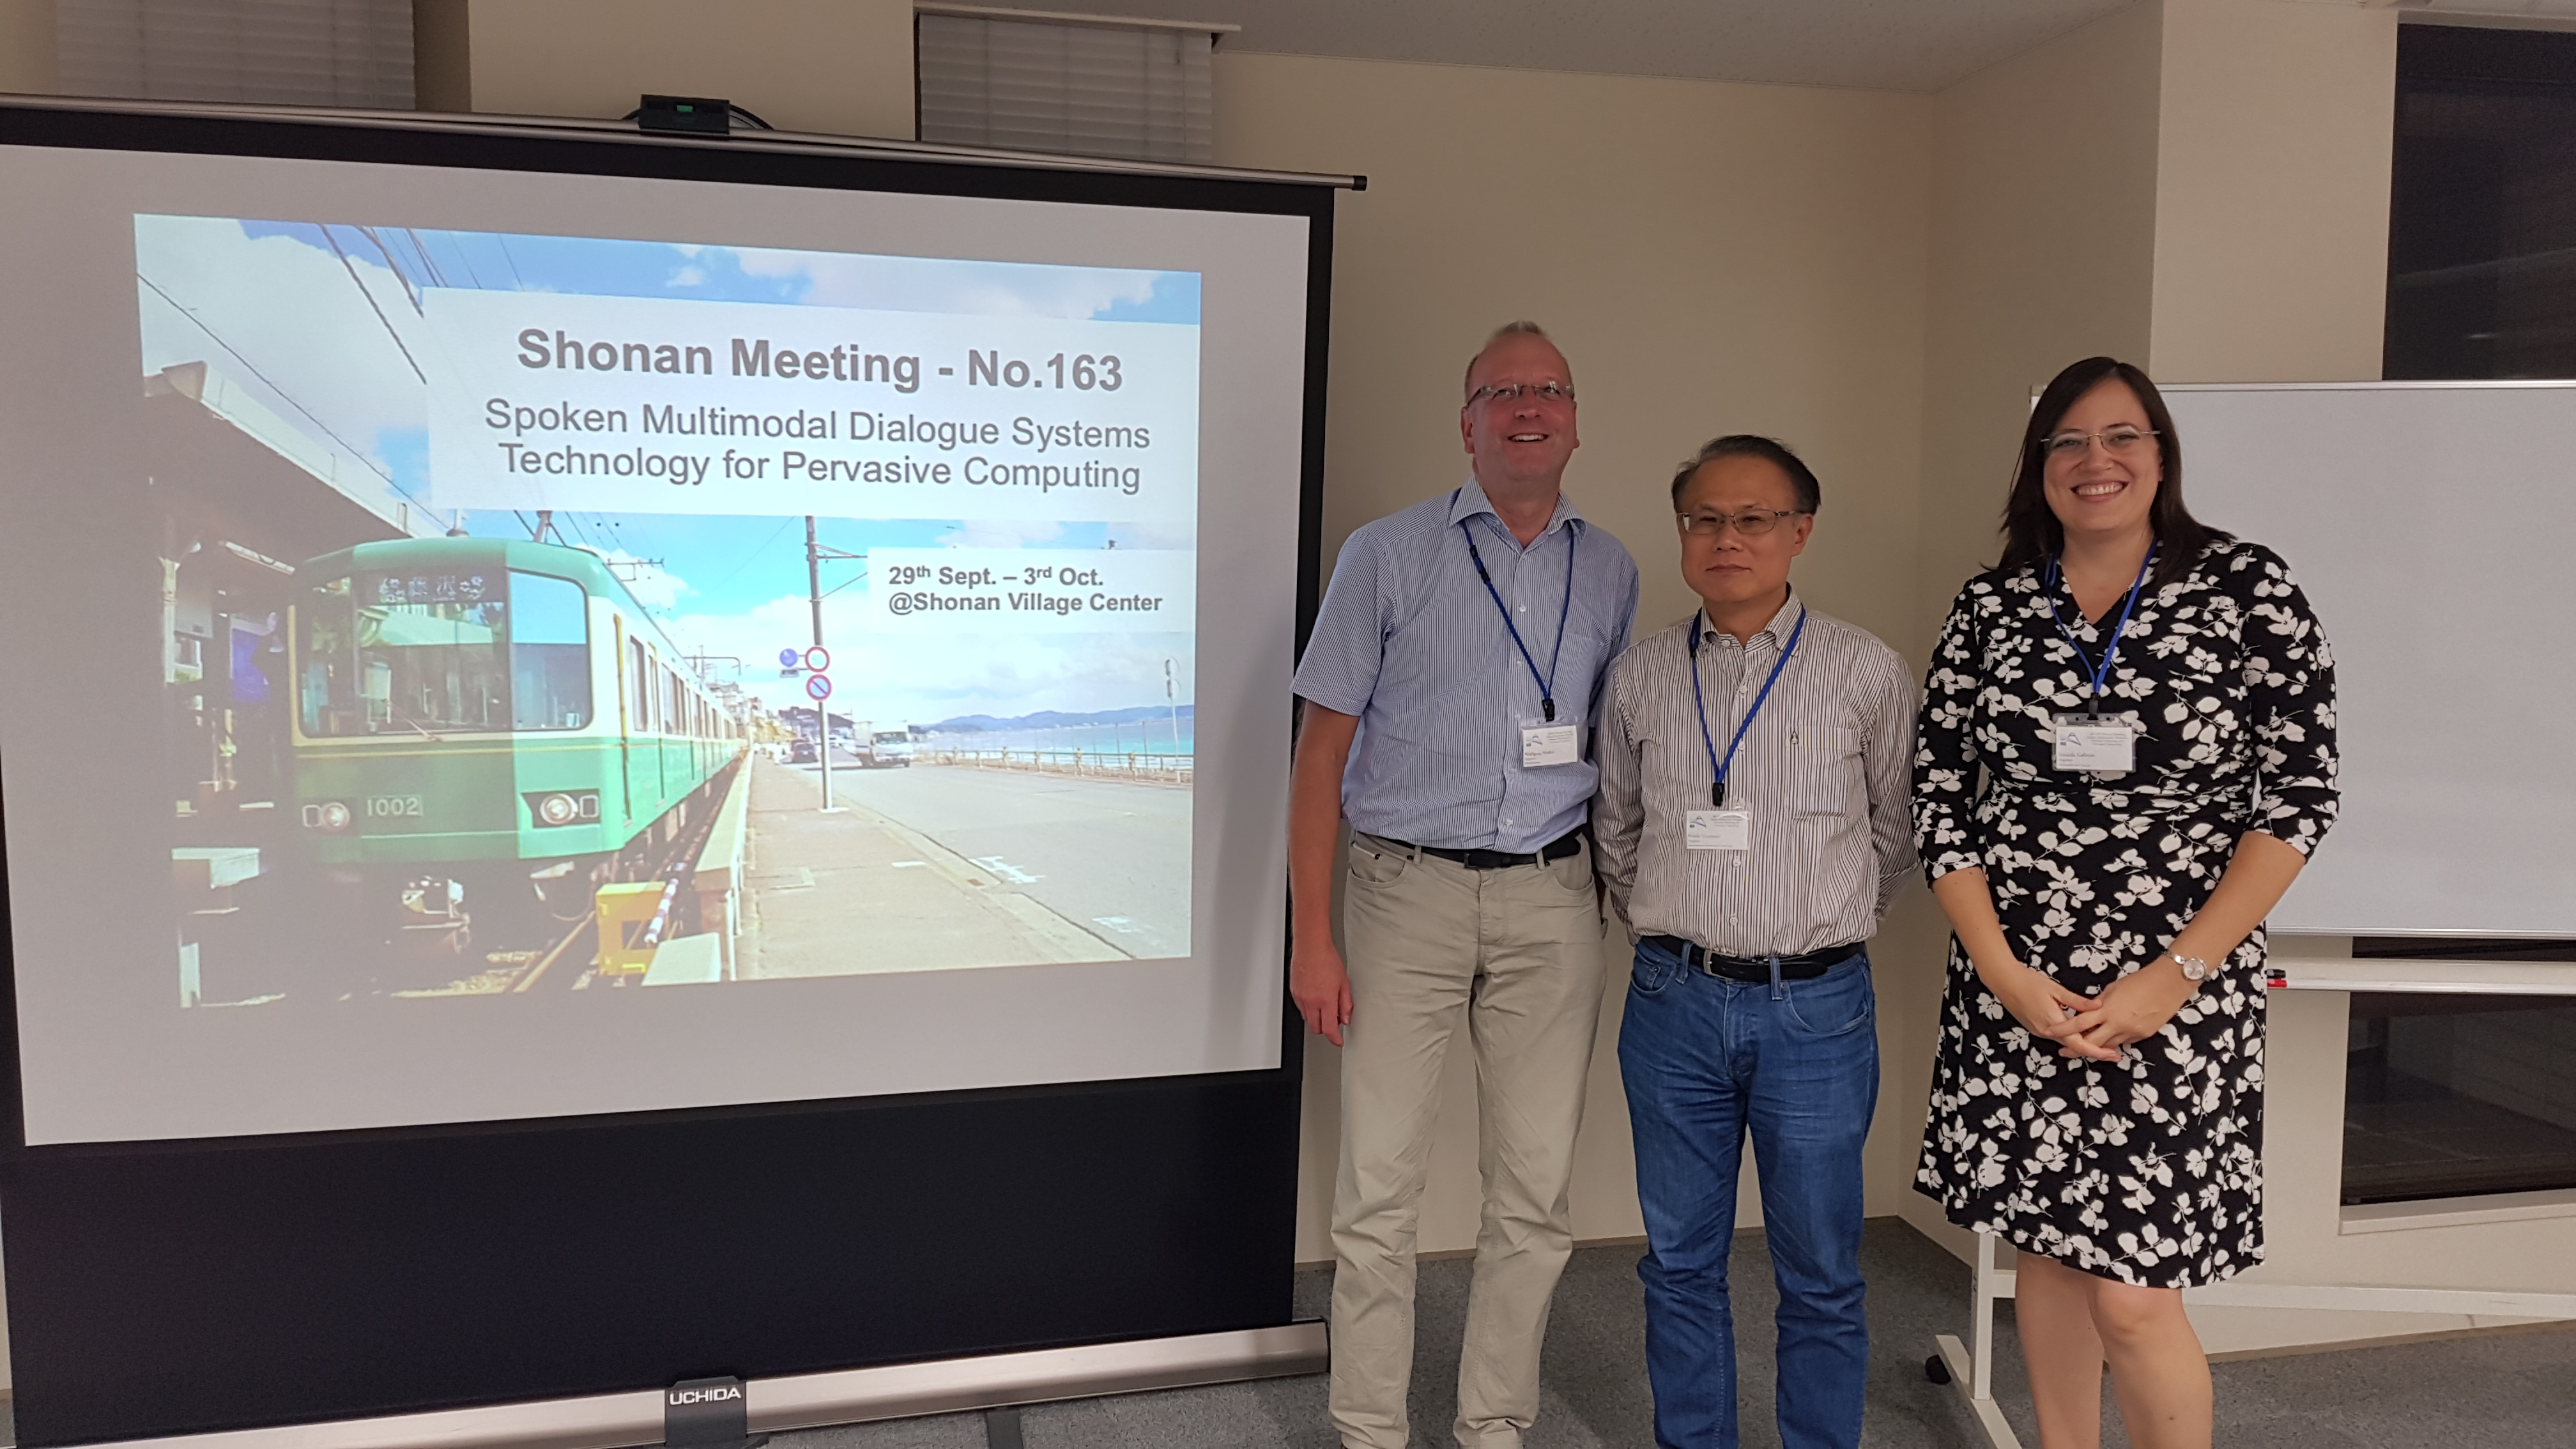 Wolfgang Minker (UULM), Keiichi Yasumoto (NAIST) and Zoraida Callejas (UGR) at the NII Shonan Meeting